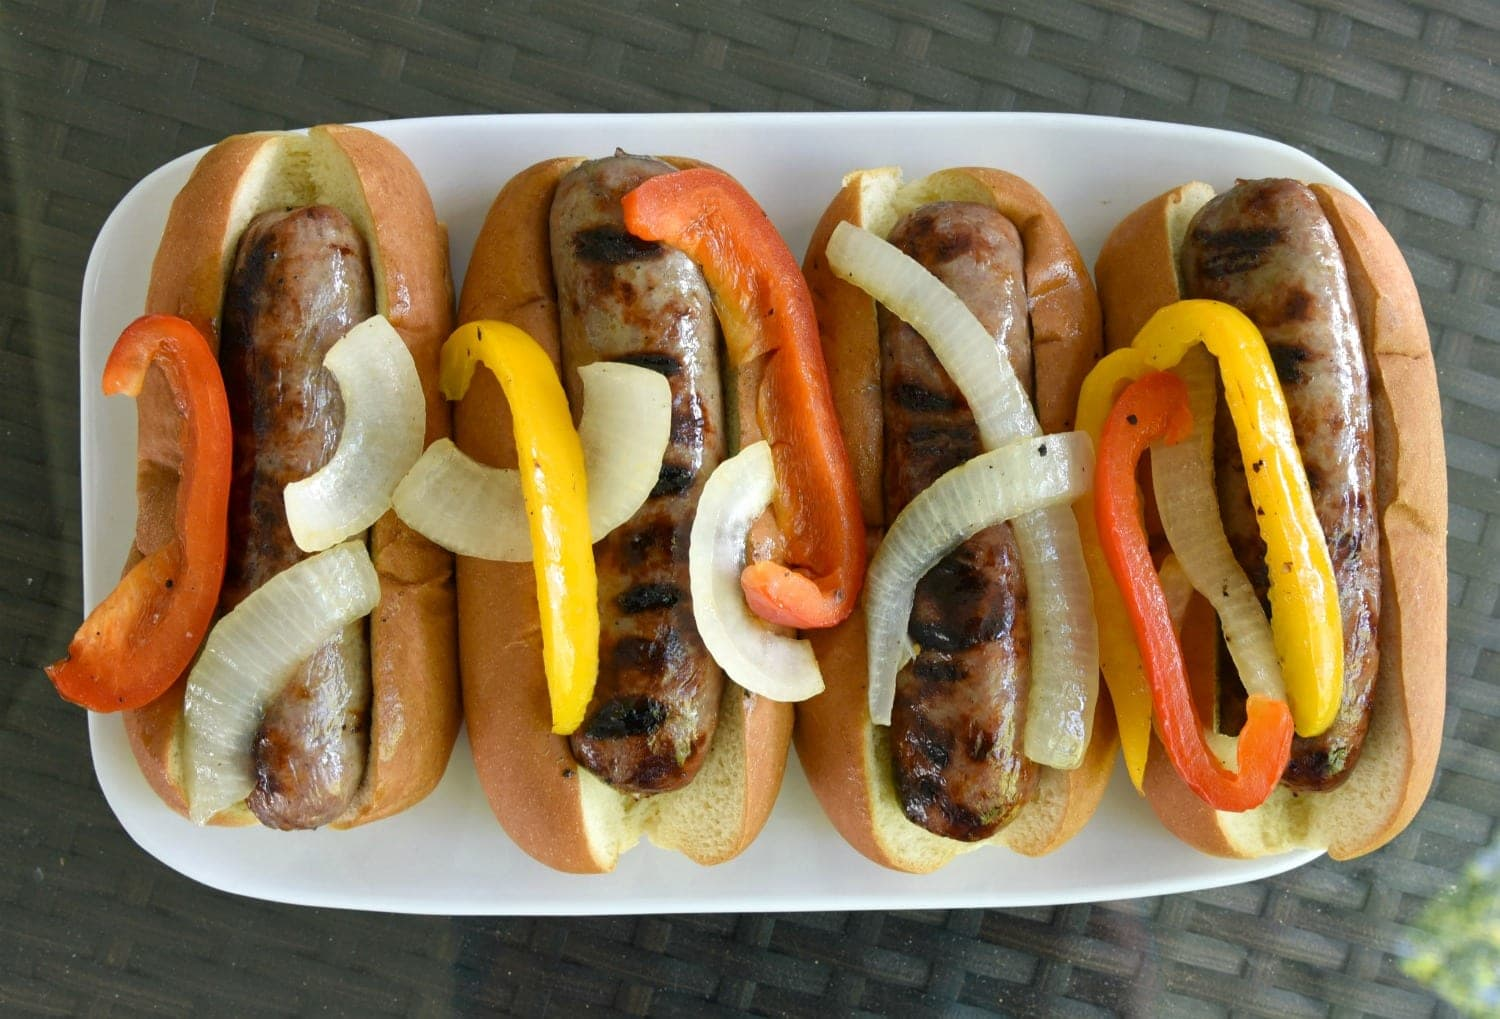 Brats with peppers and onions